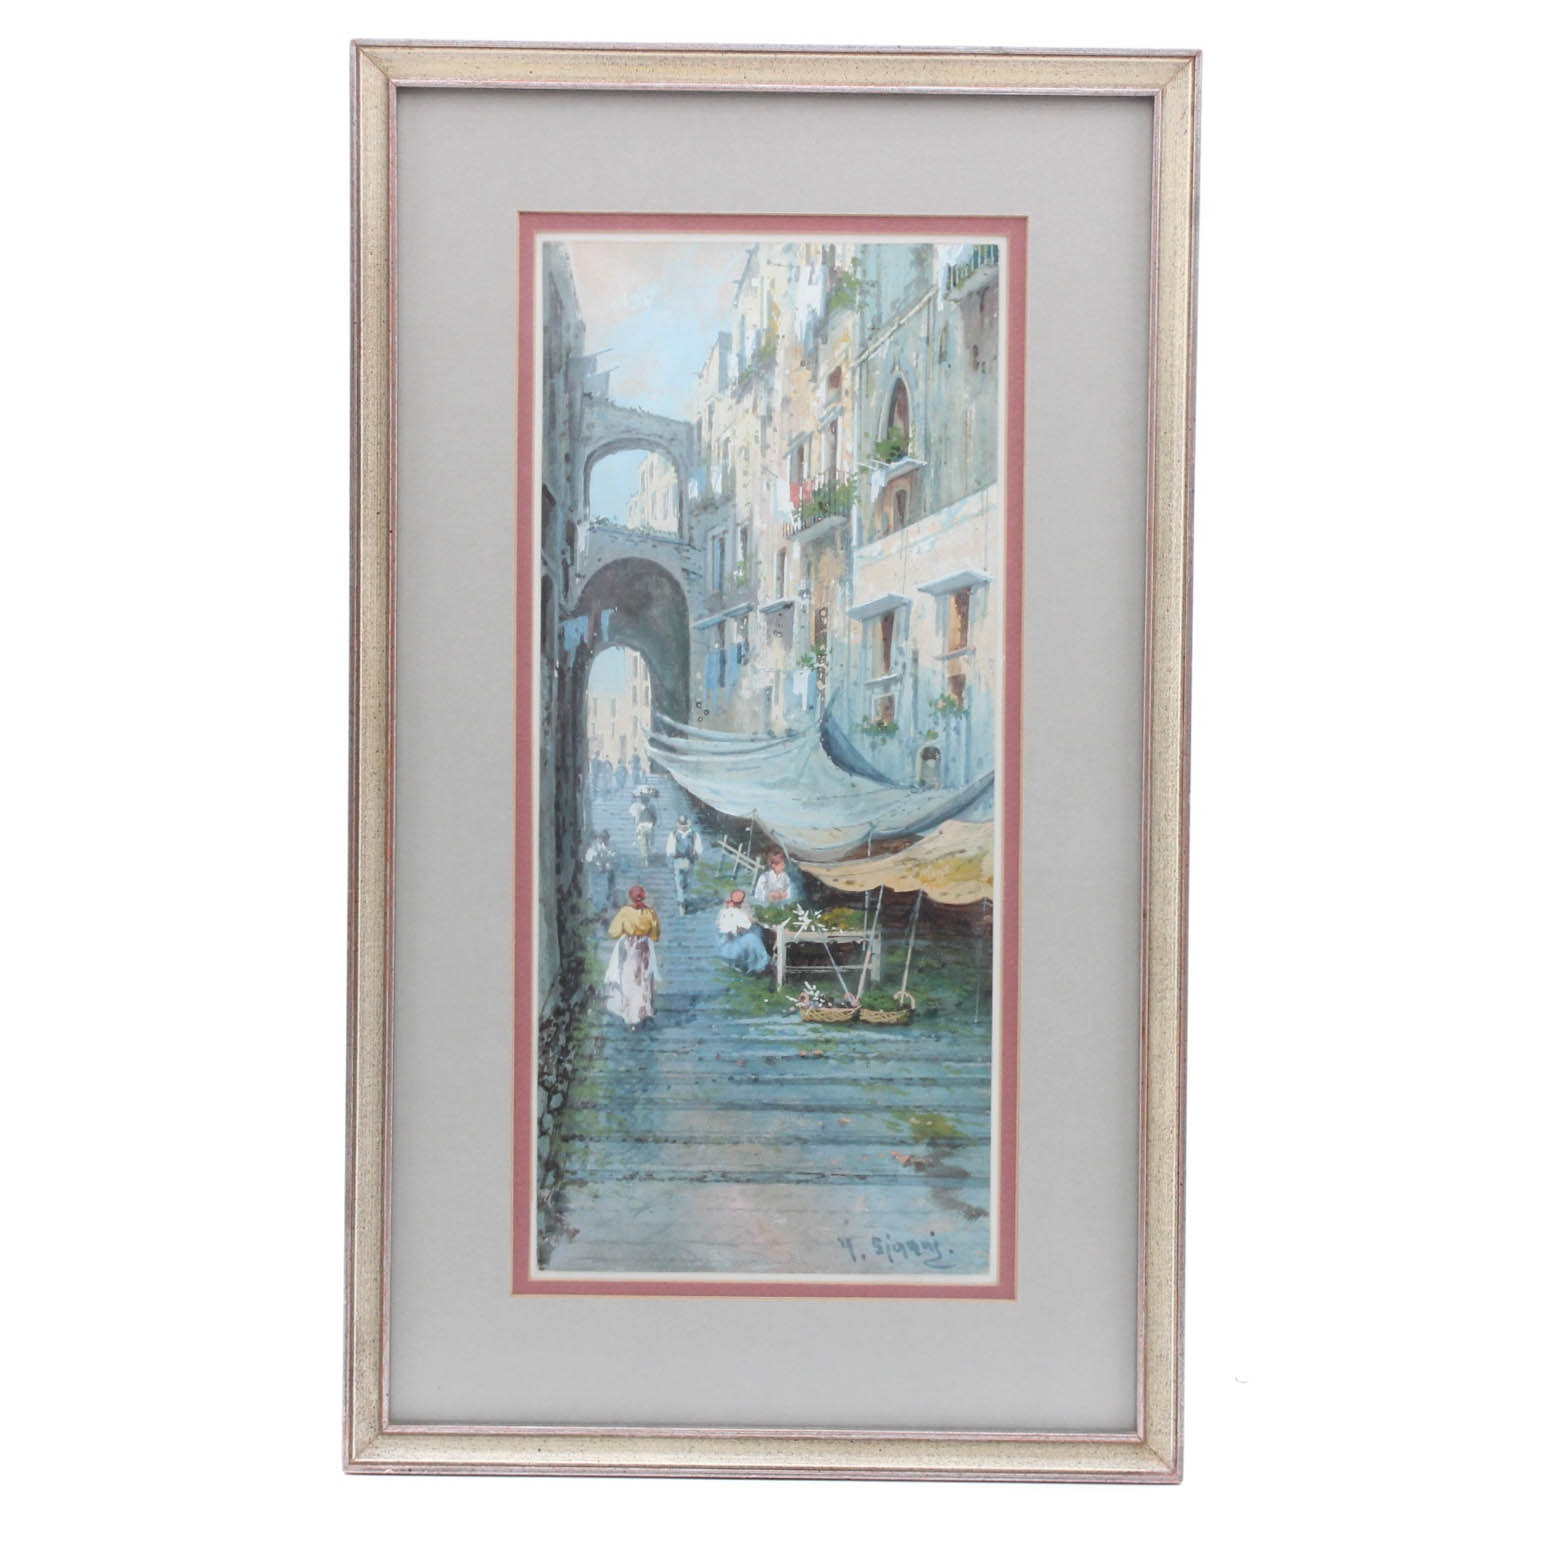 Signed Mediterranean Cityscape Watercolor and Gouache Painting